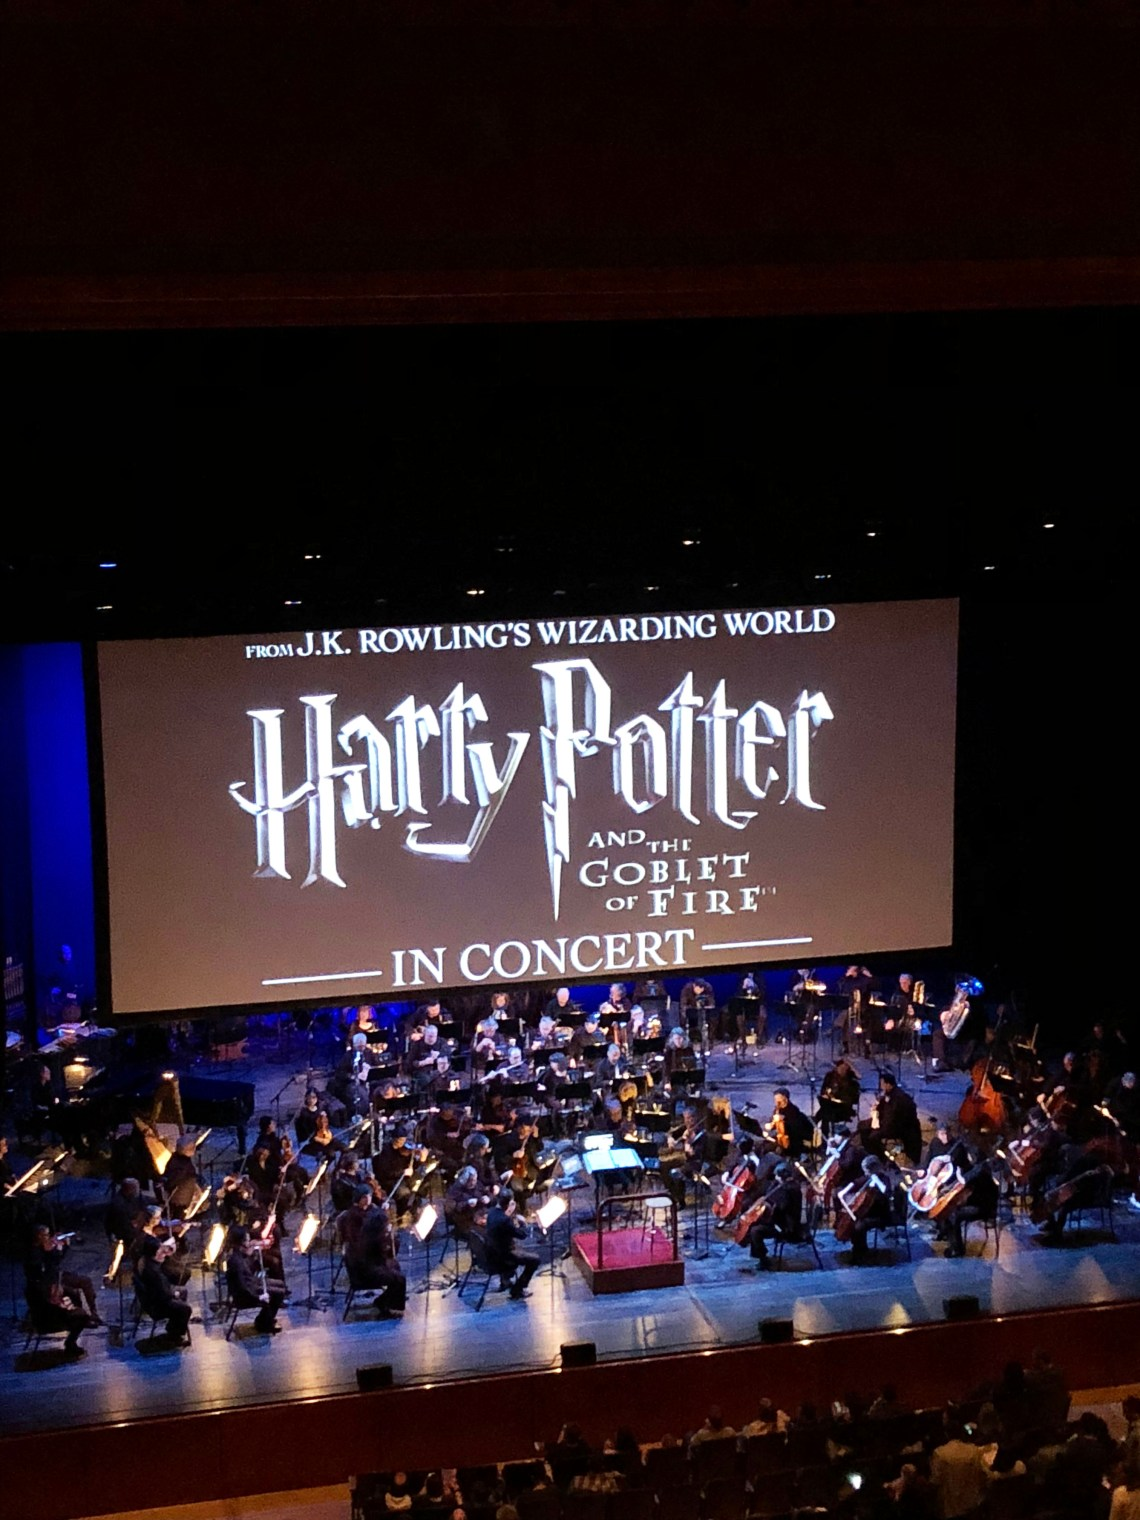 NJPAC Harry Potter & the Goblet of Fire Concert